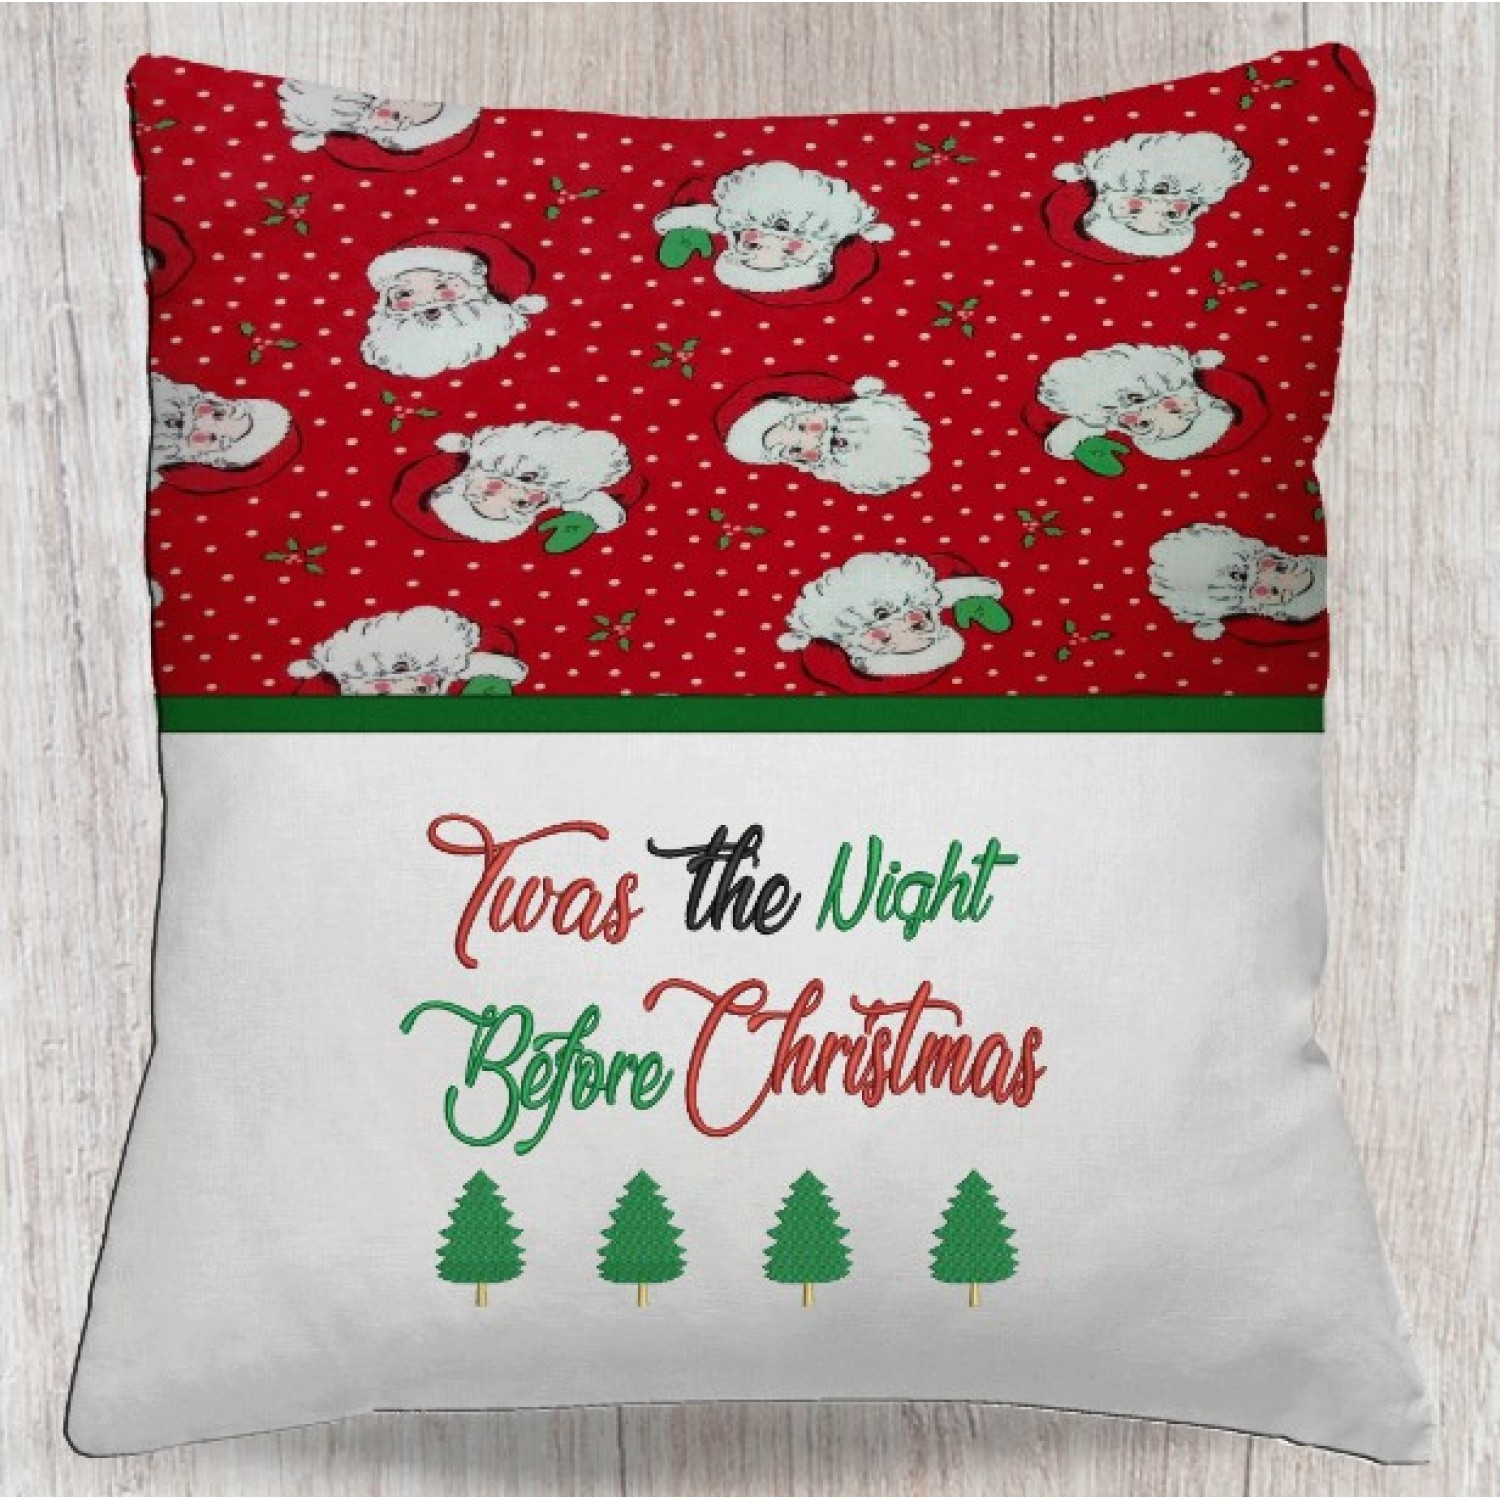 Twas the Night Before Christmas embroidery